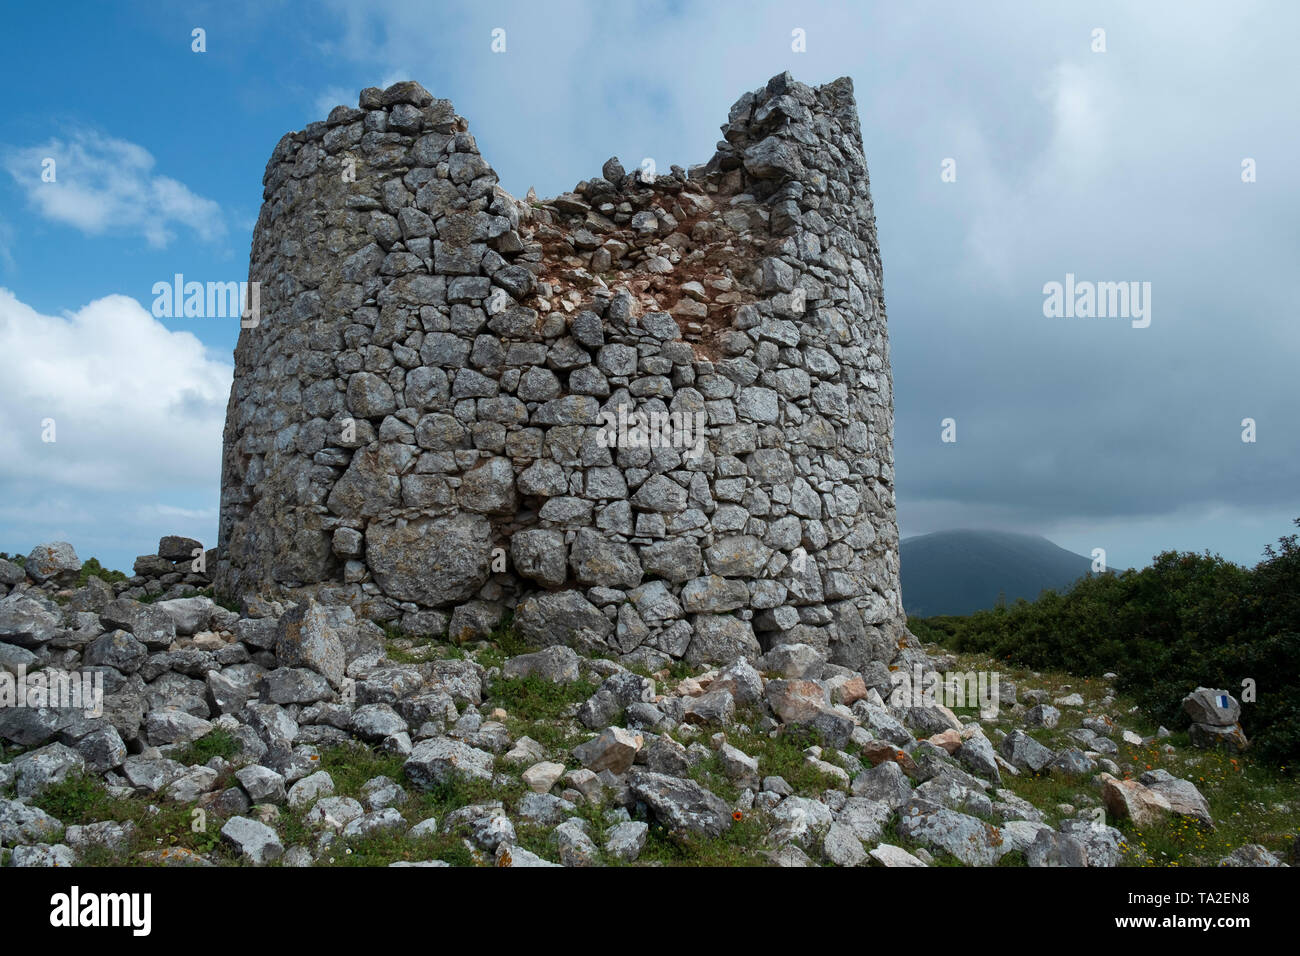 Ruins of ancient windmills around Exogi, Ithaca, Greece. Ithaca, Ithaki or Ithaka is a Greek island located in the Ionian Sea to the west of continental Greece. Ithacas main island has an area of 96 square kilometres. It is the second-smallest of seven main Ionian Islands. - Stock Image